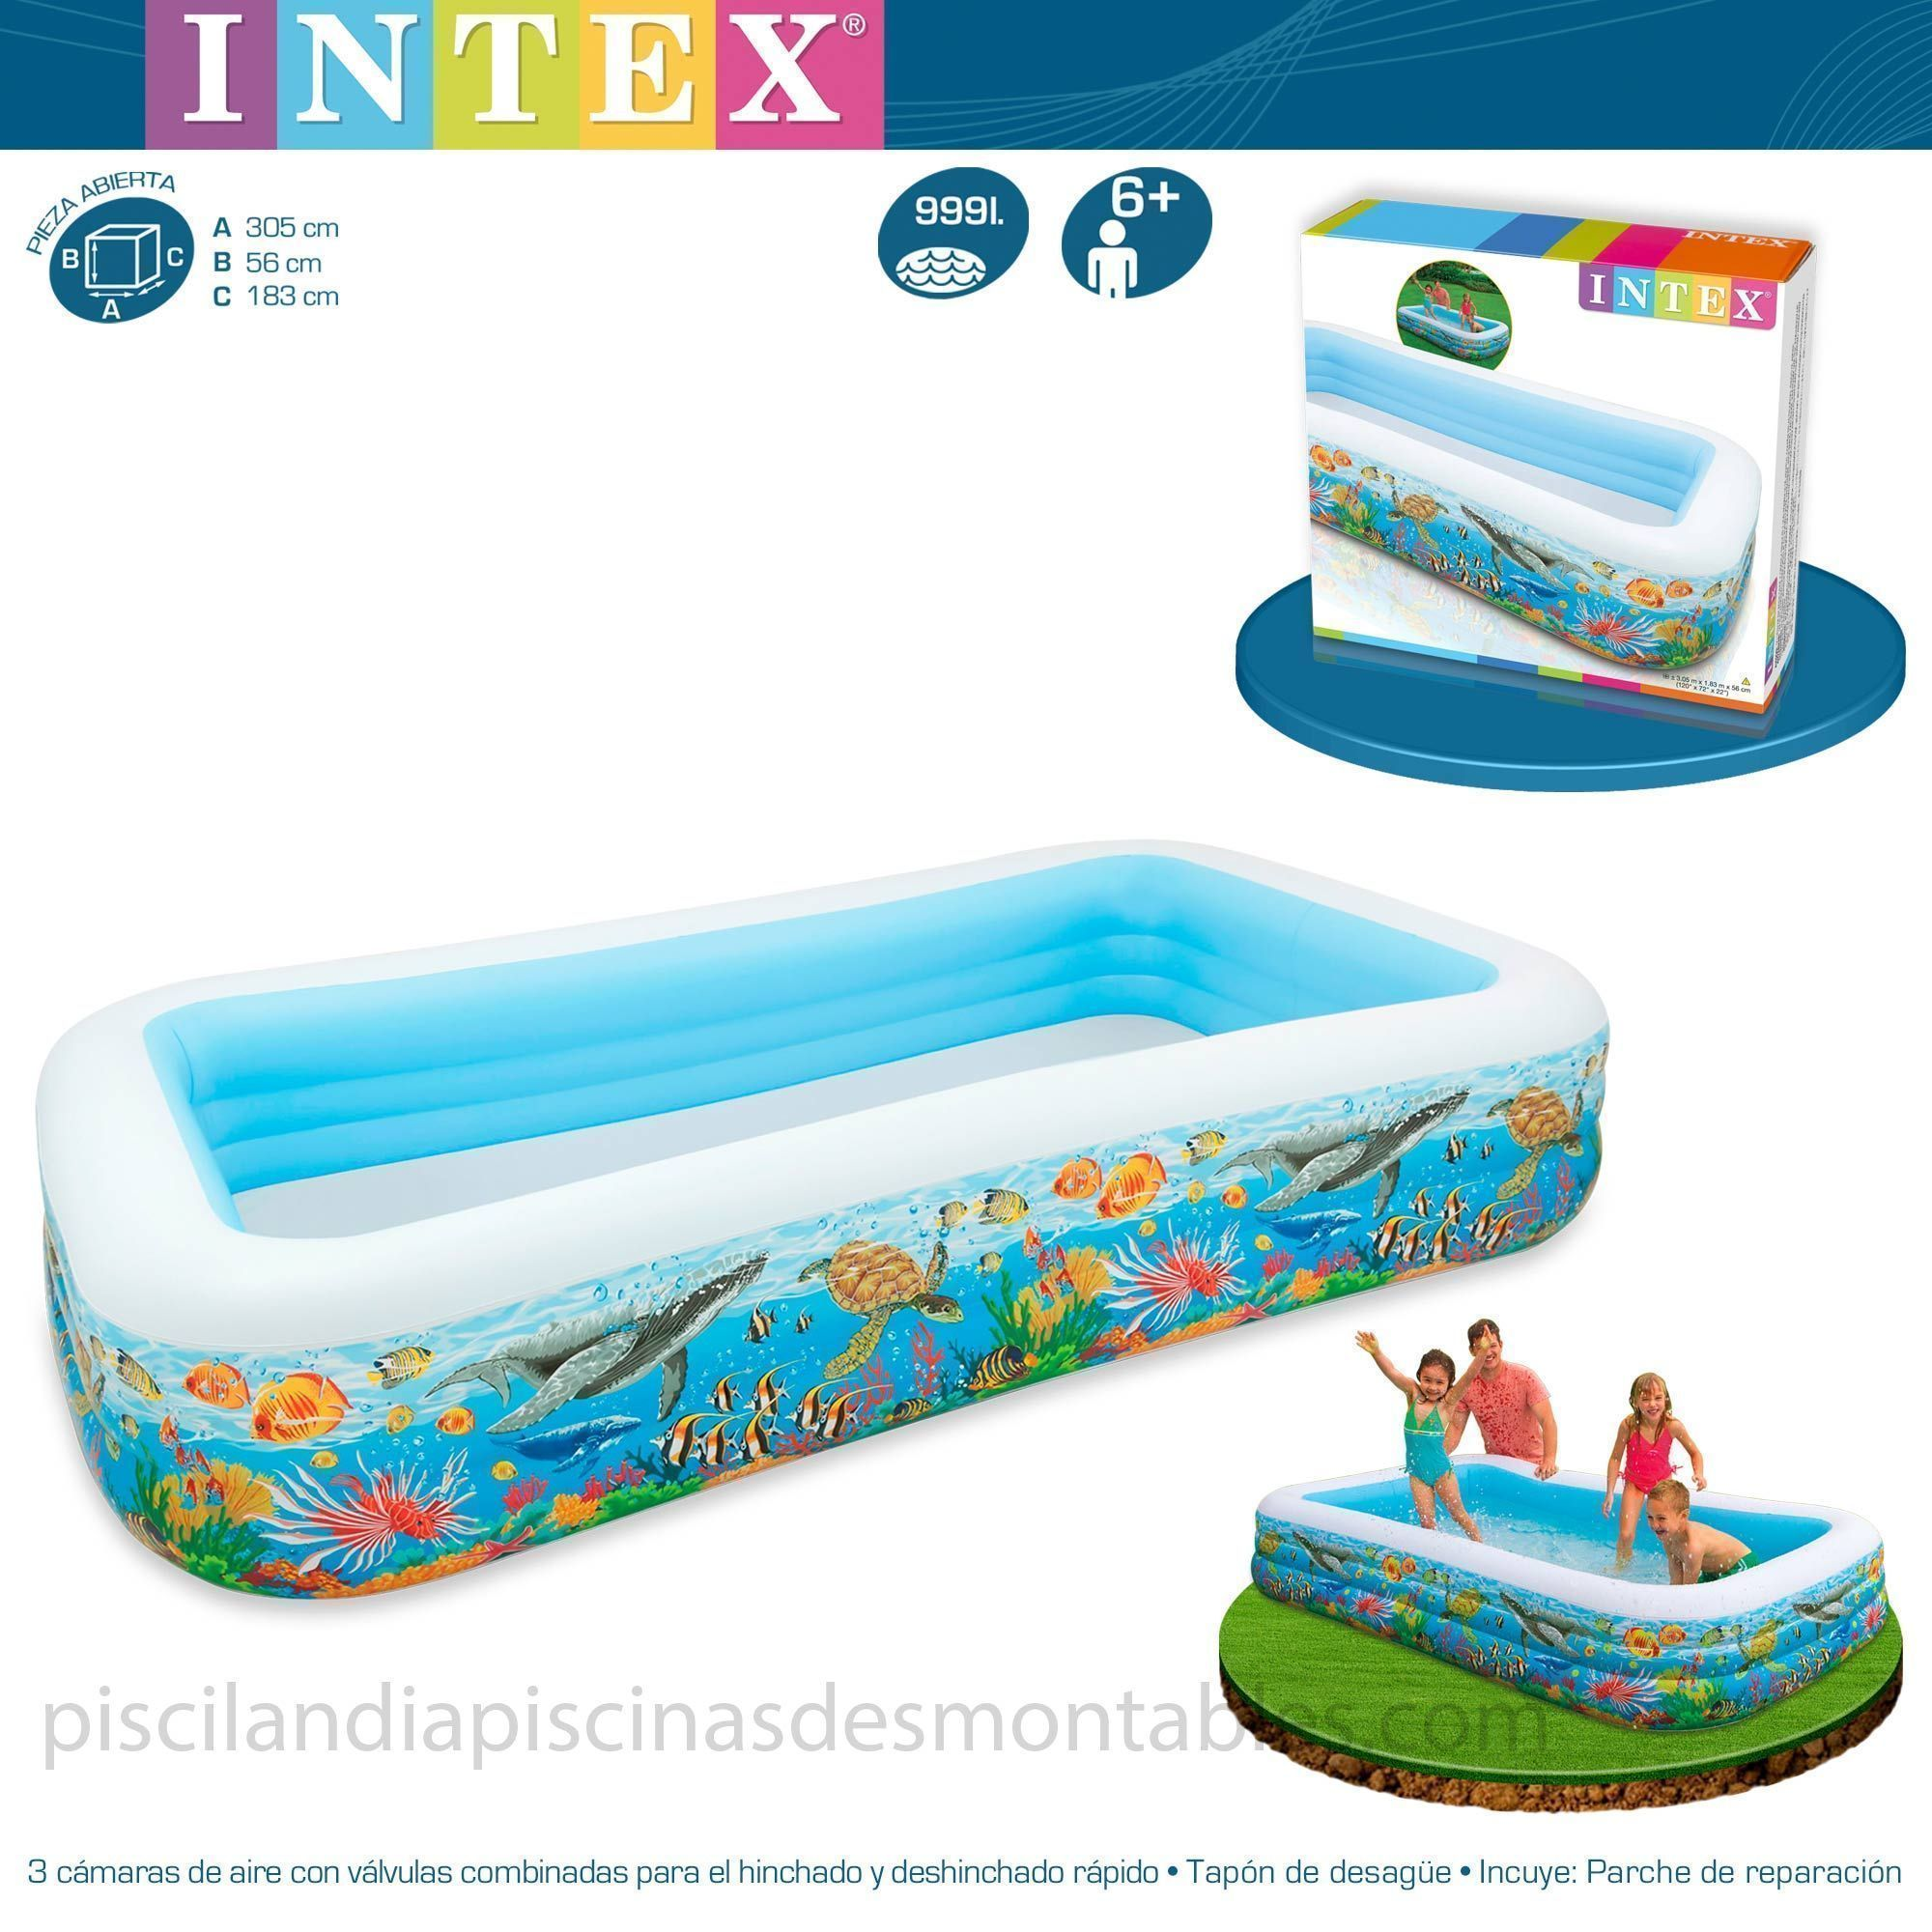 Piscina Intex Infantil Piscina Hinchable Infantil Modelo Tropical Medidas 305 X